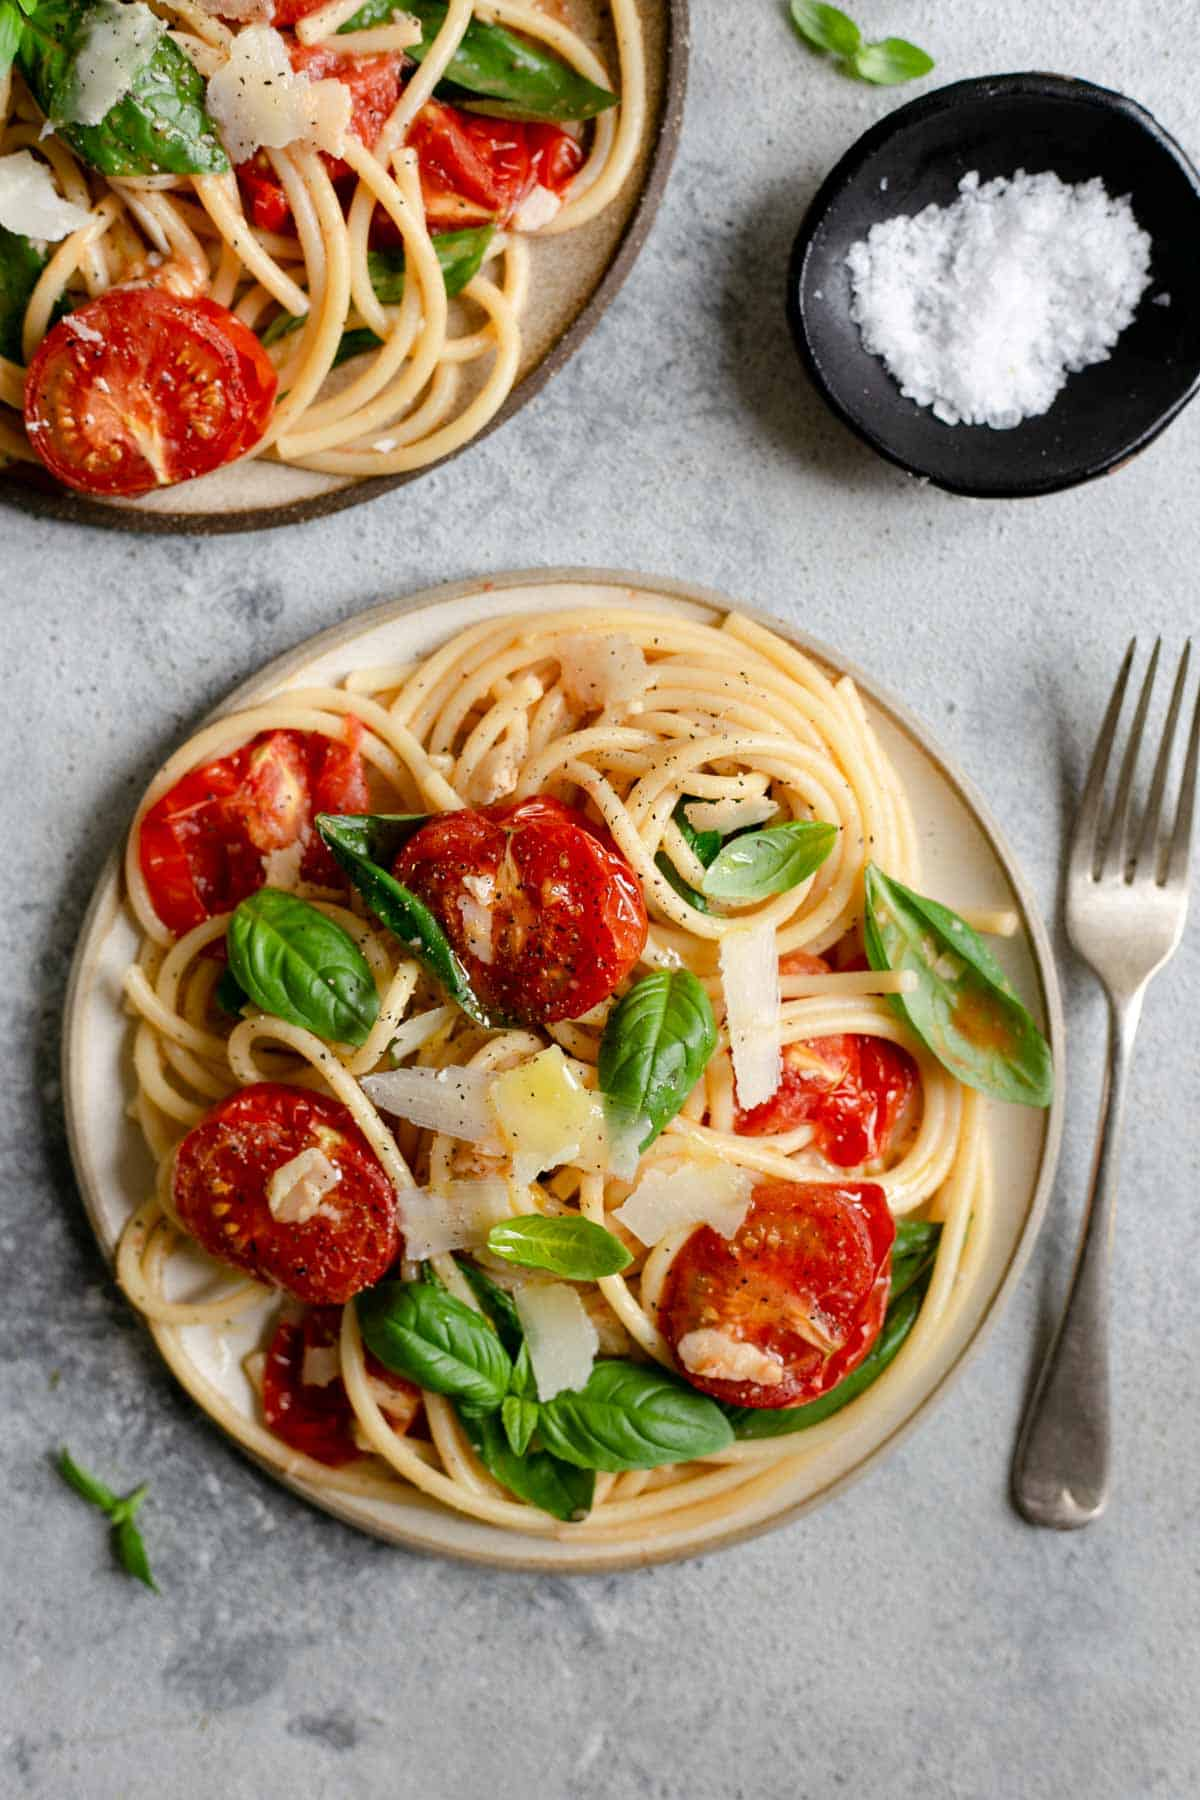 Super simple recipe for bucatini pasta with roasted tomatoes. Easy and delicious dish, perfect for a whole family! #bucatinipasta #simplerecipe